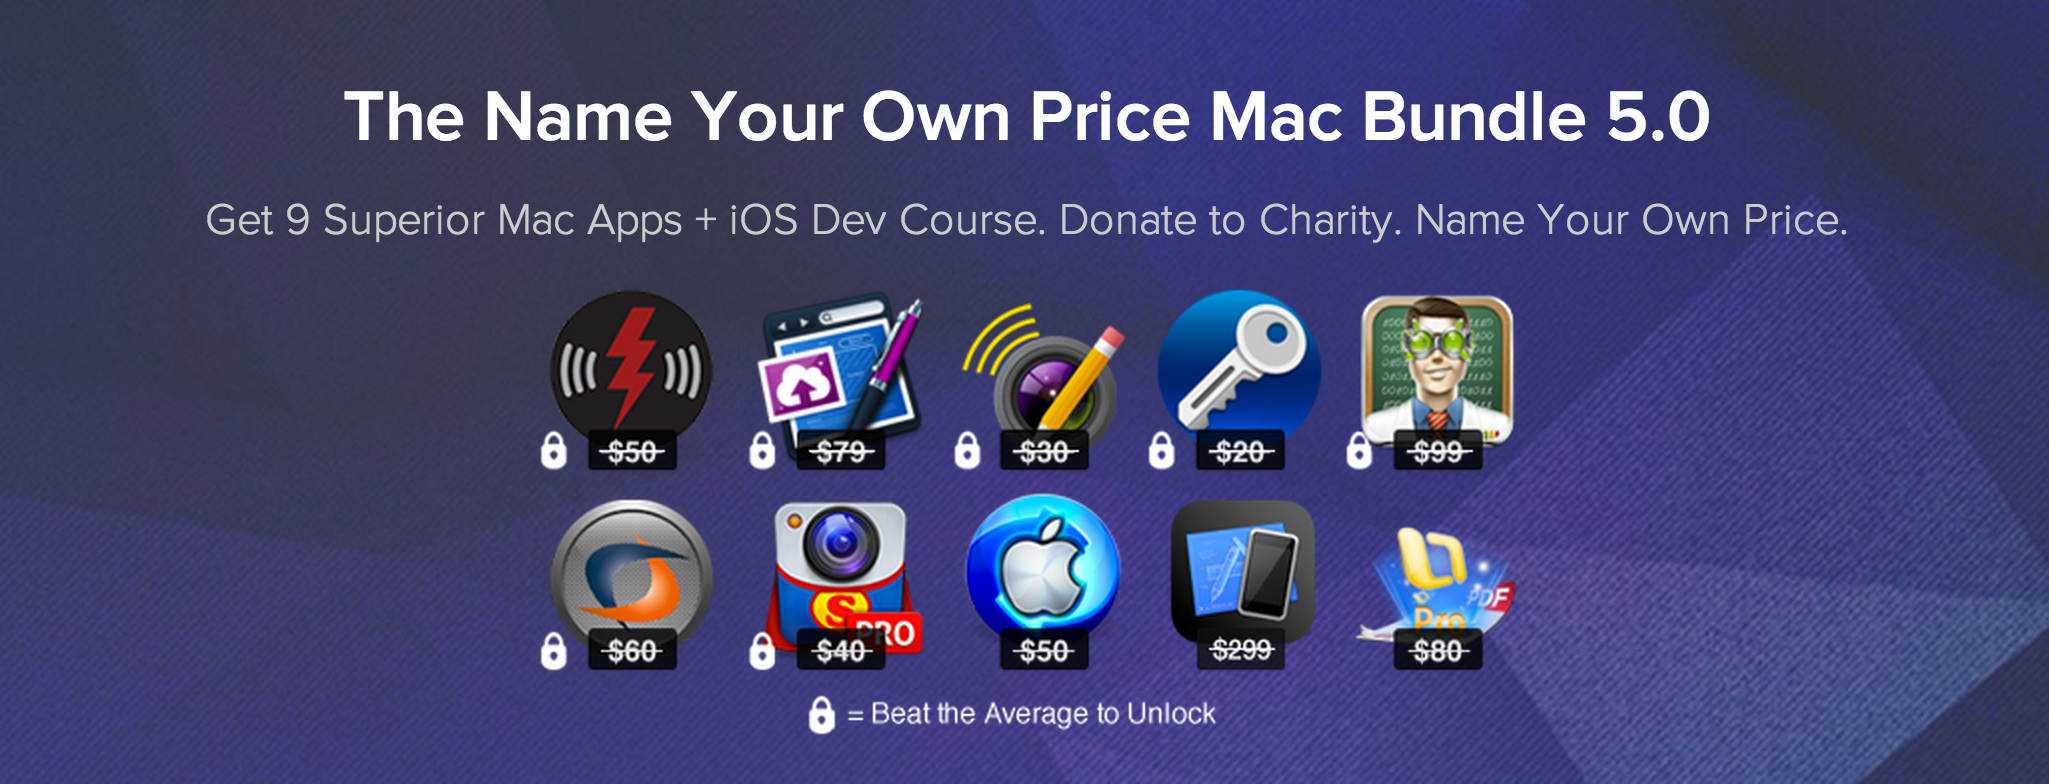 The Name Your Own Price Mac Bundle 5.0